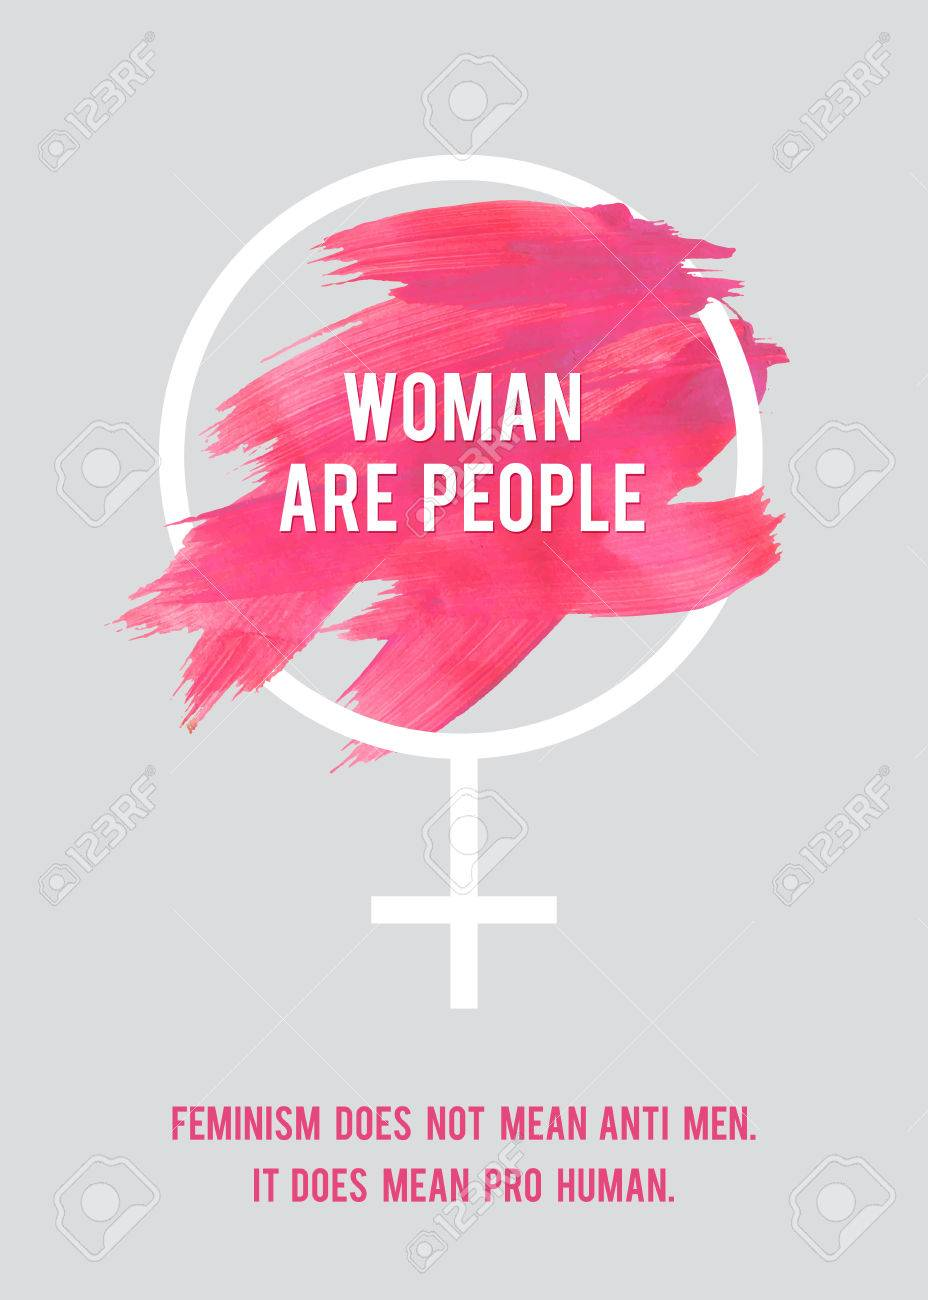 Stroke Poster Feminism Female Symbol With Text Womans Vector